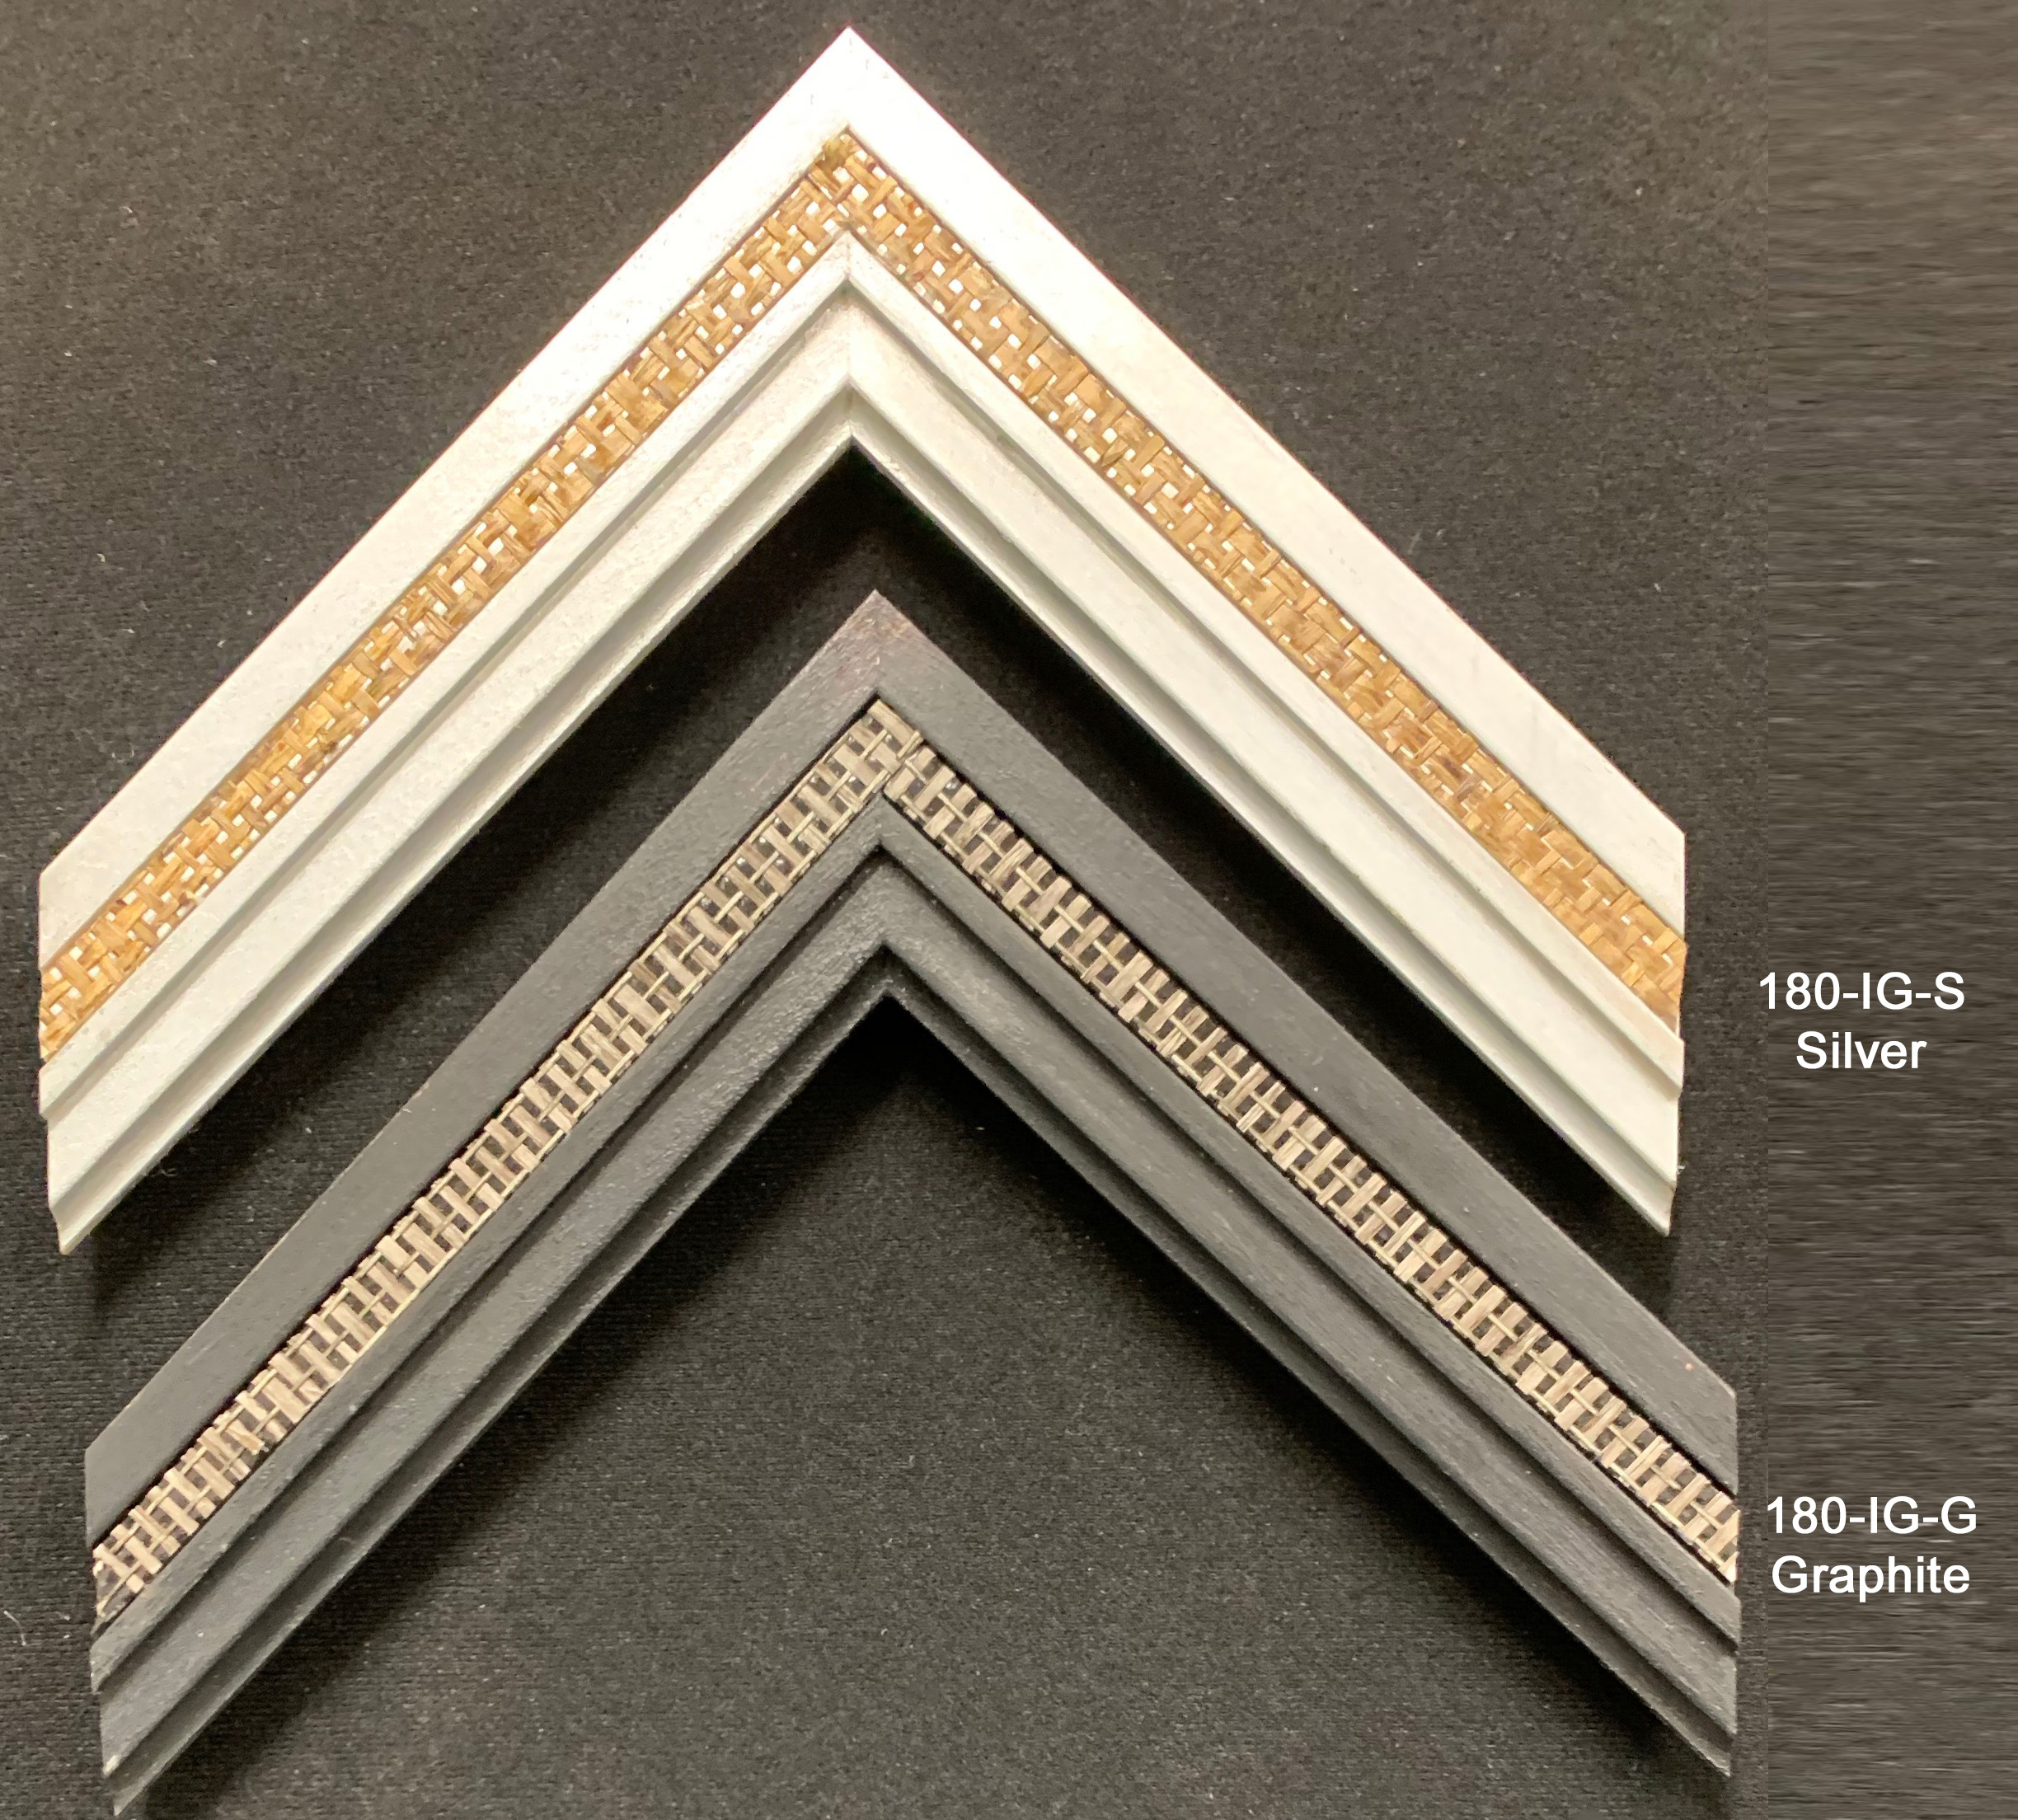 Grooved wood moulding with a basket weave insert